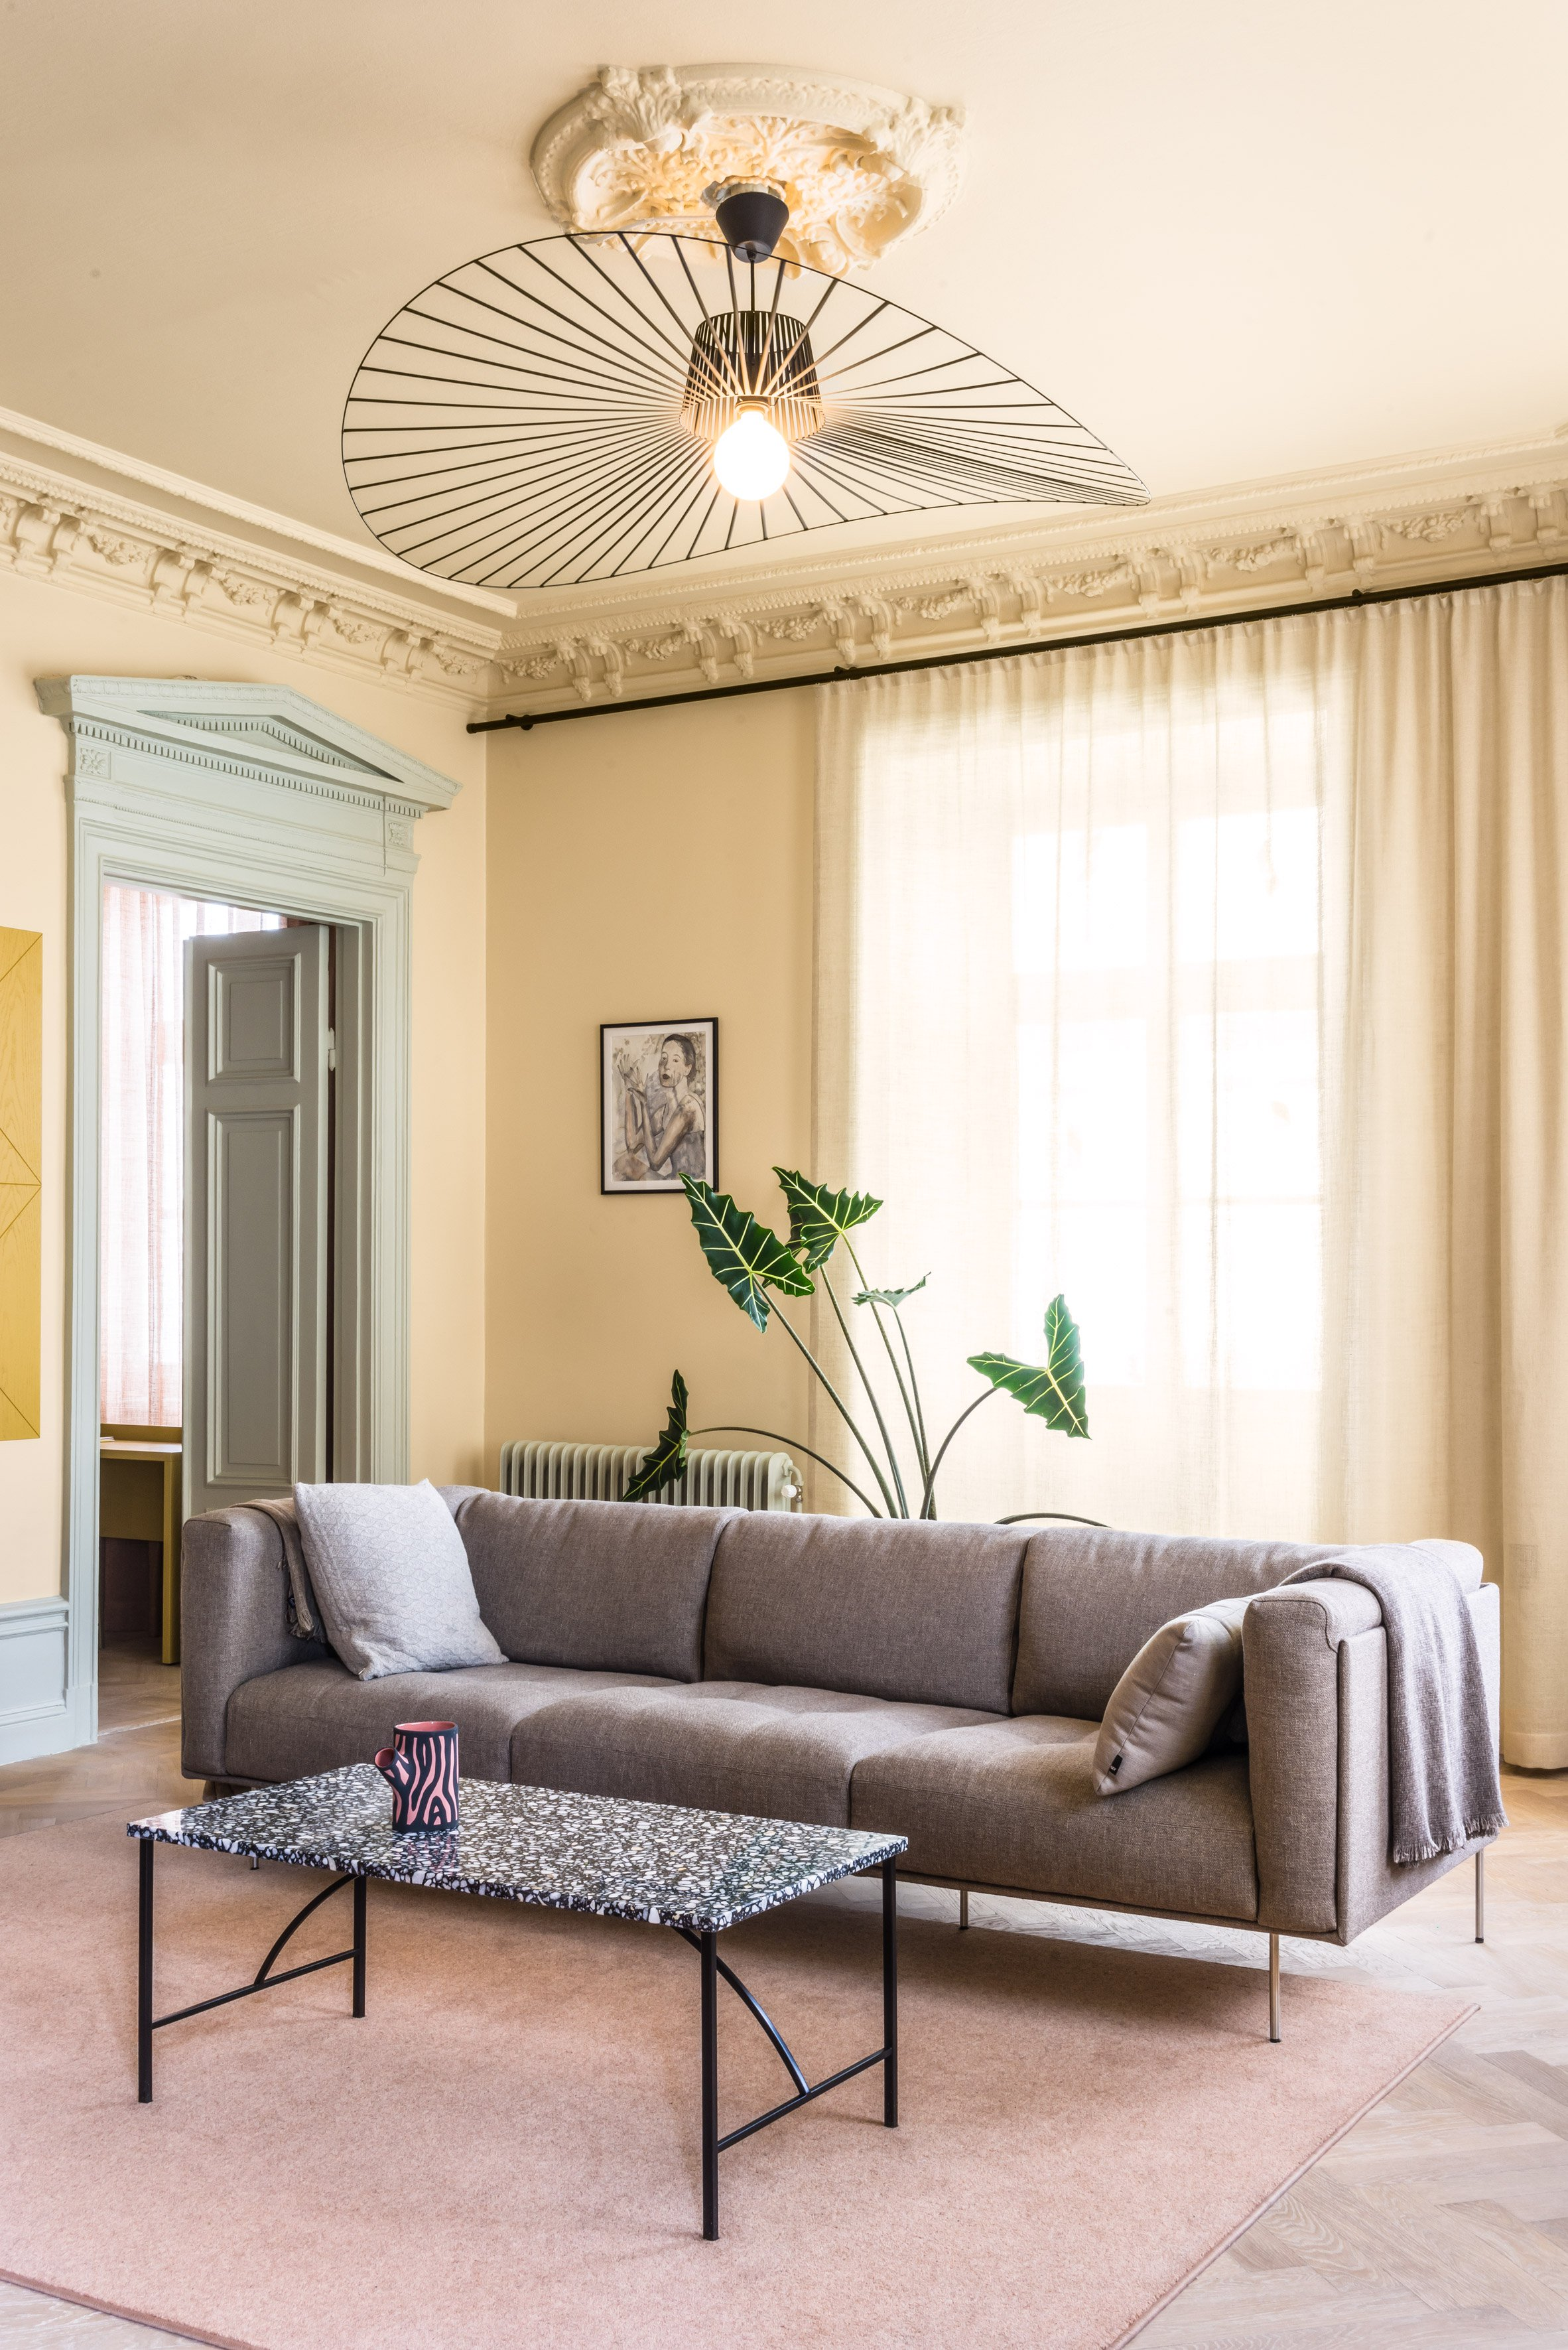 Dreamy pastels revamp a 19th century Stockholm home Curbed